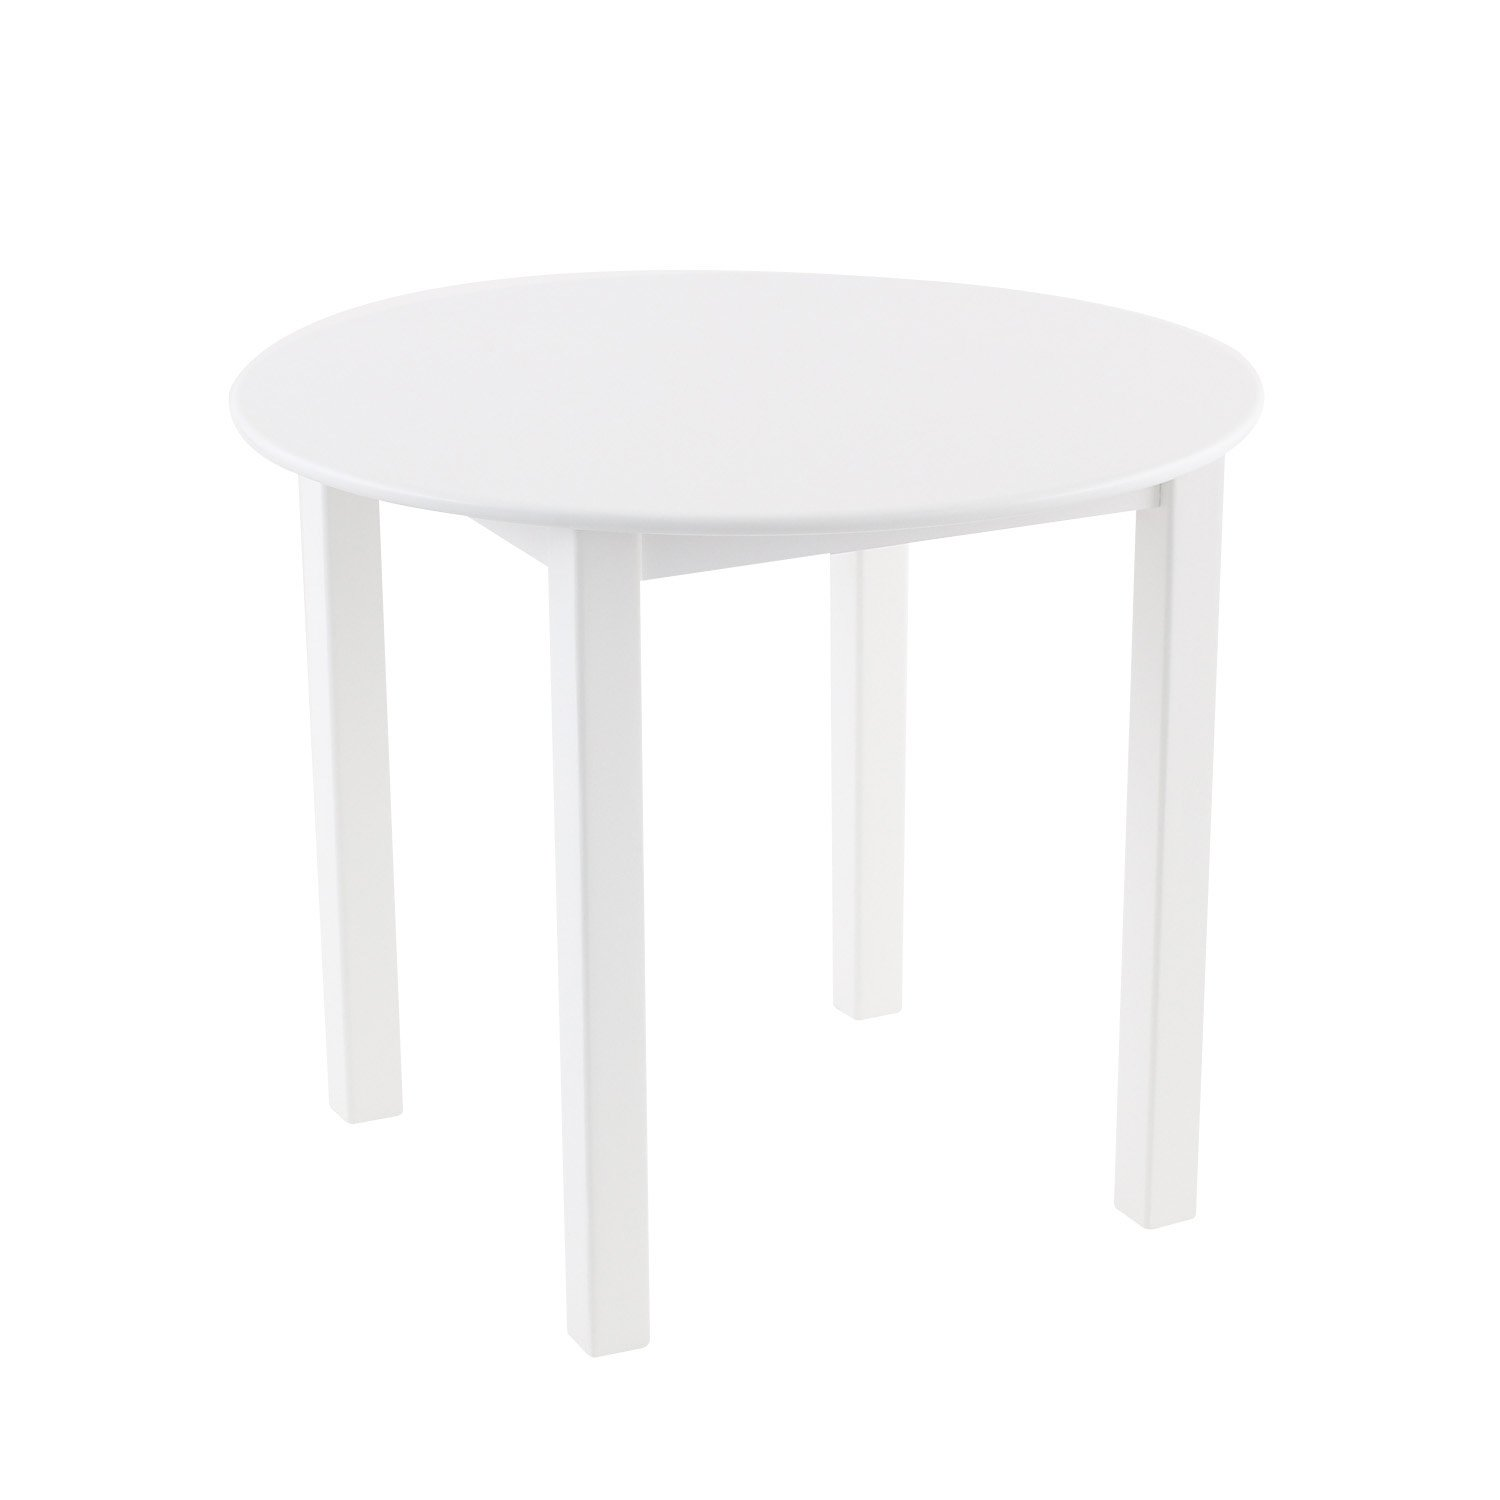 Max & Lily Natural Wood Kid and Toddler Round Table, White by Max & Lily